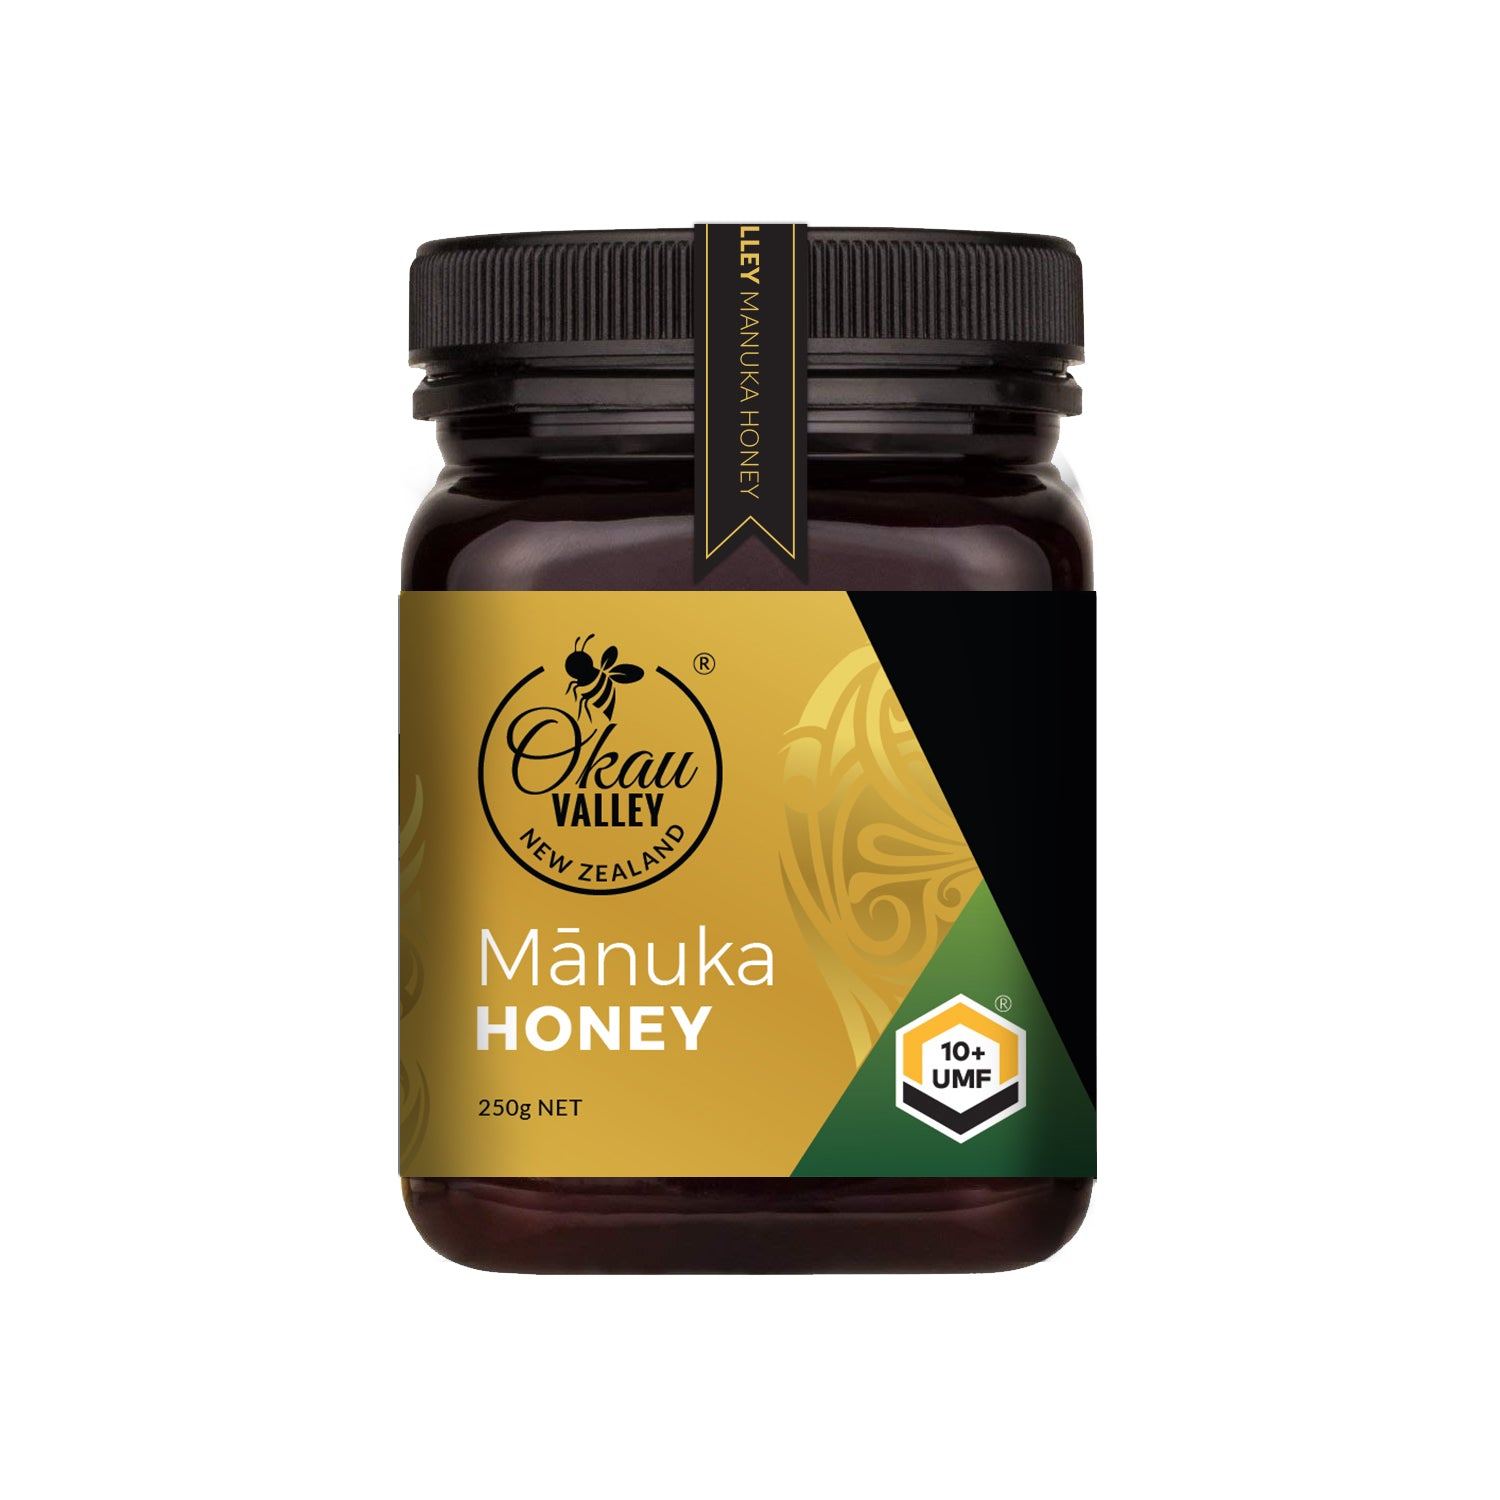 Okau Valley UMF 10+ Mānuka Honey